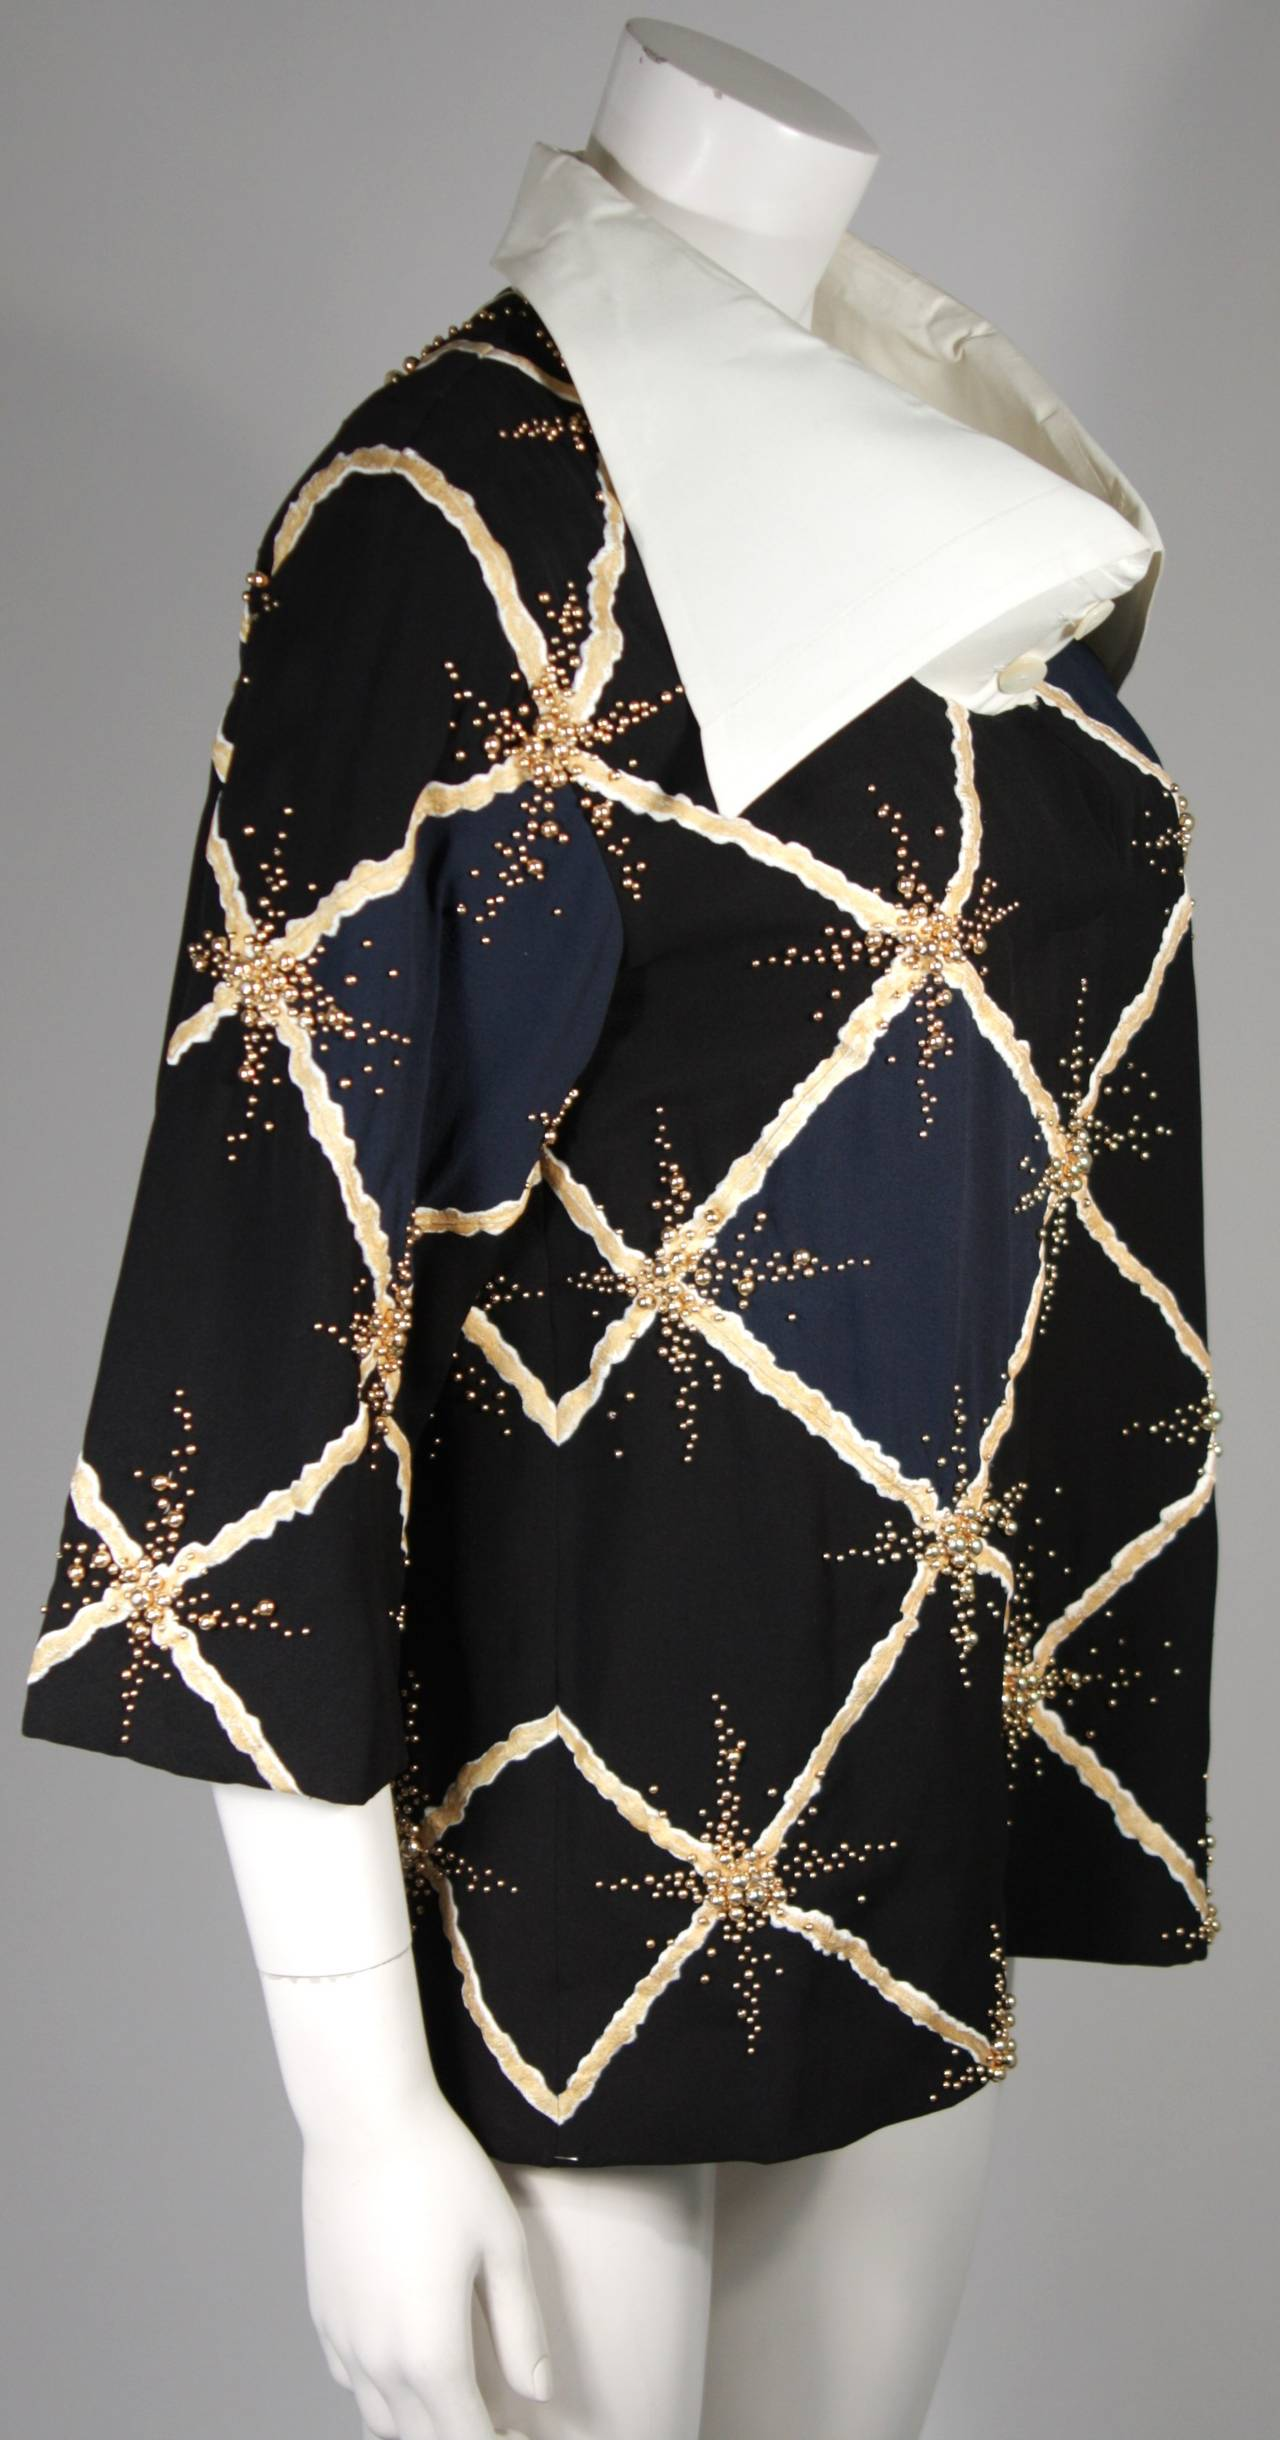 Pierre Balmain Couture Embellished Blouse with Exaggerated Collar  Size Small 6